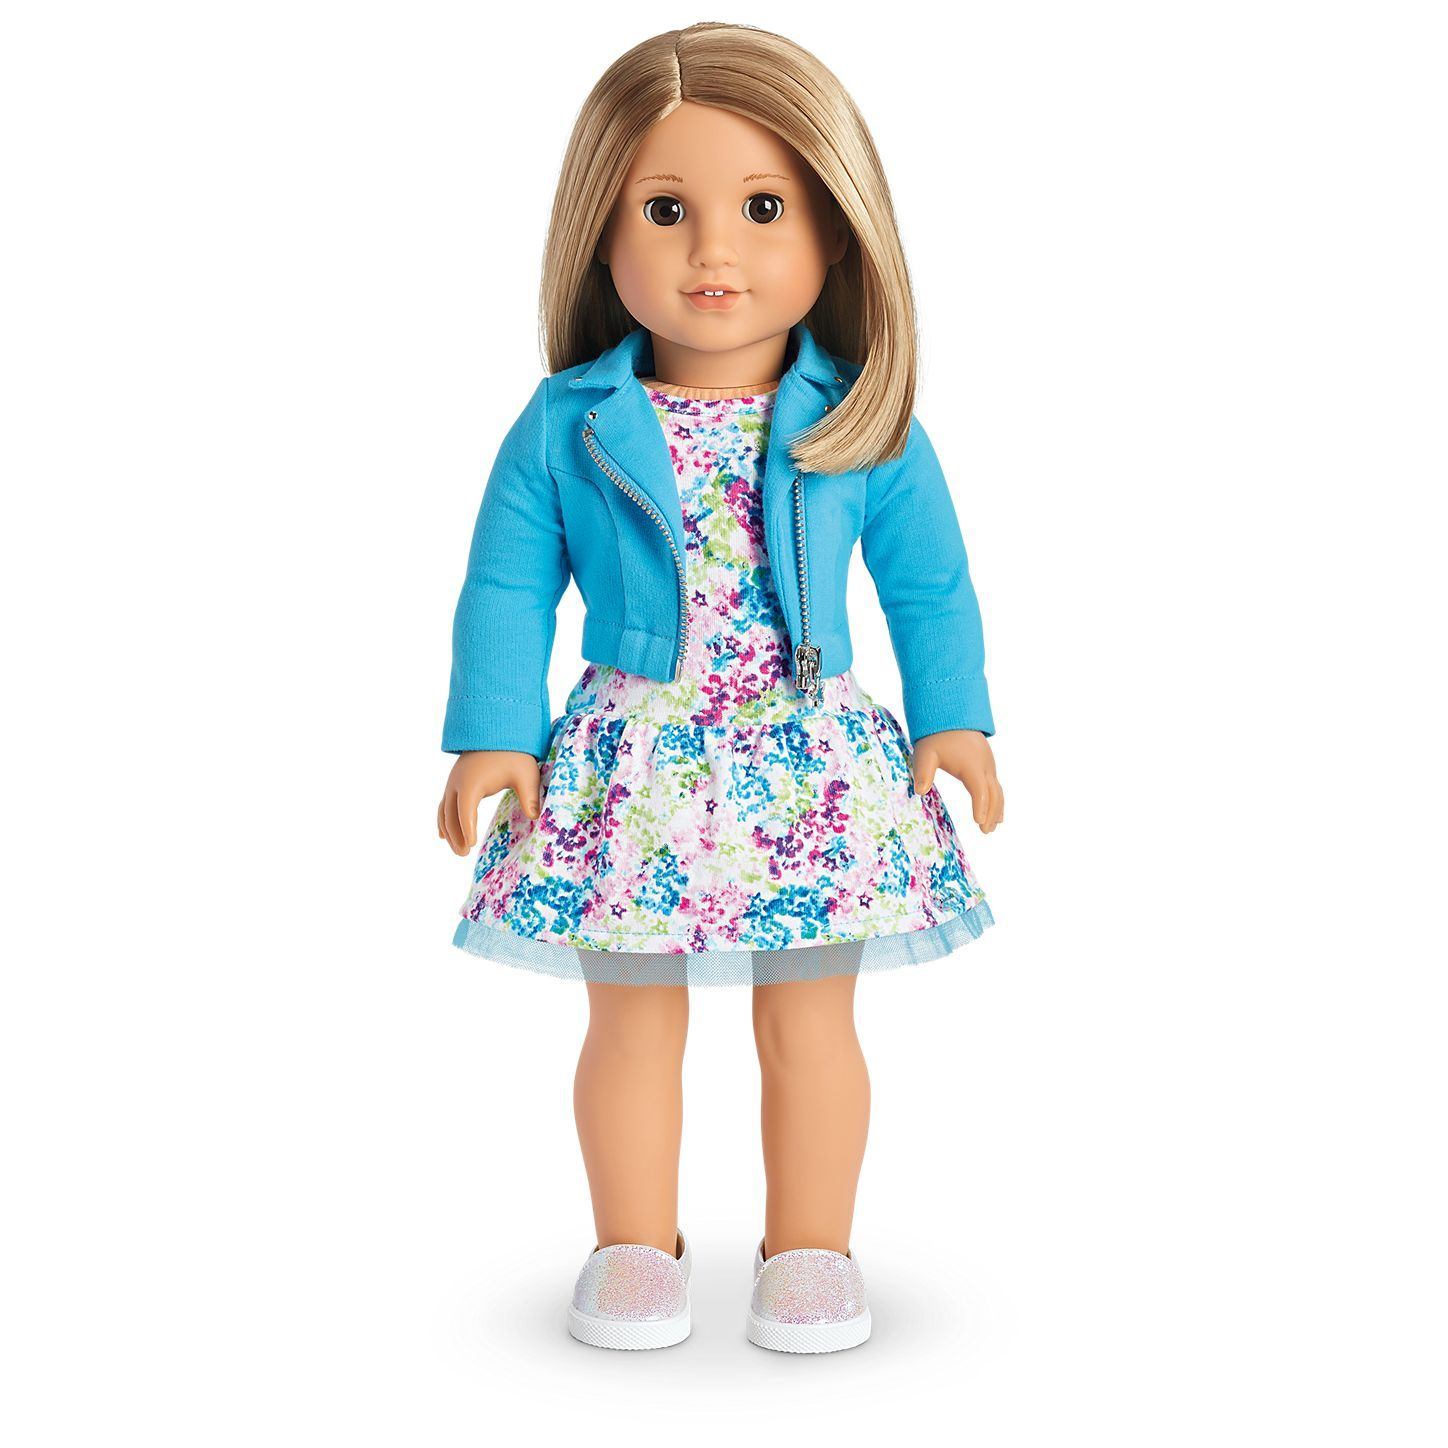 Medium Teal doll clothes fit Sparkle Girlz and other dolls Sweater for Barbie